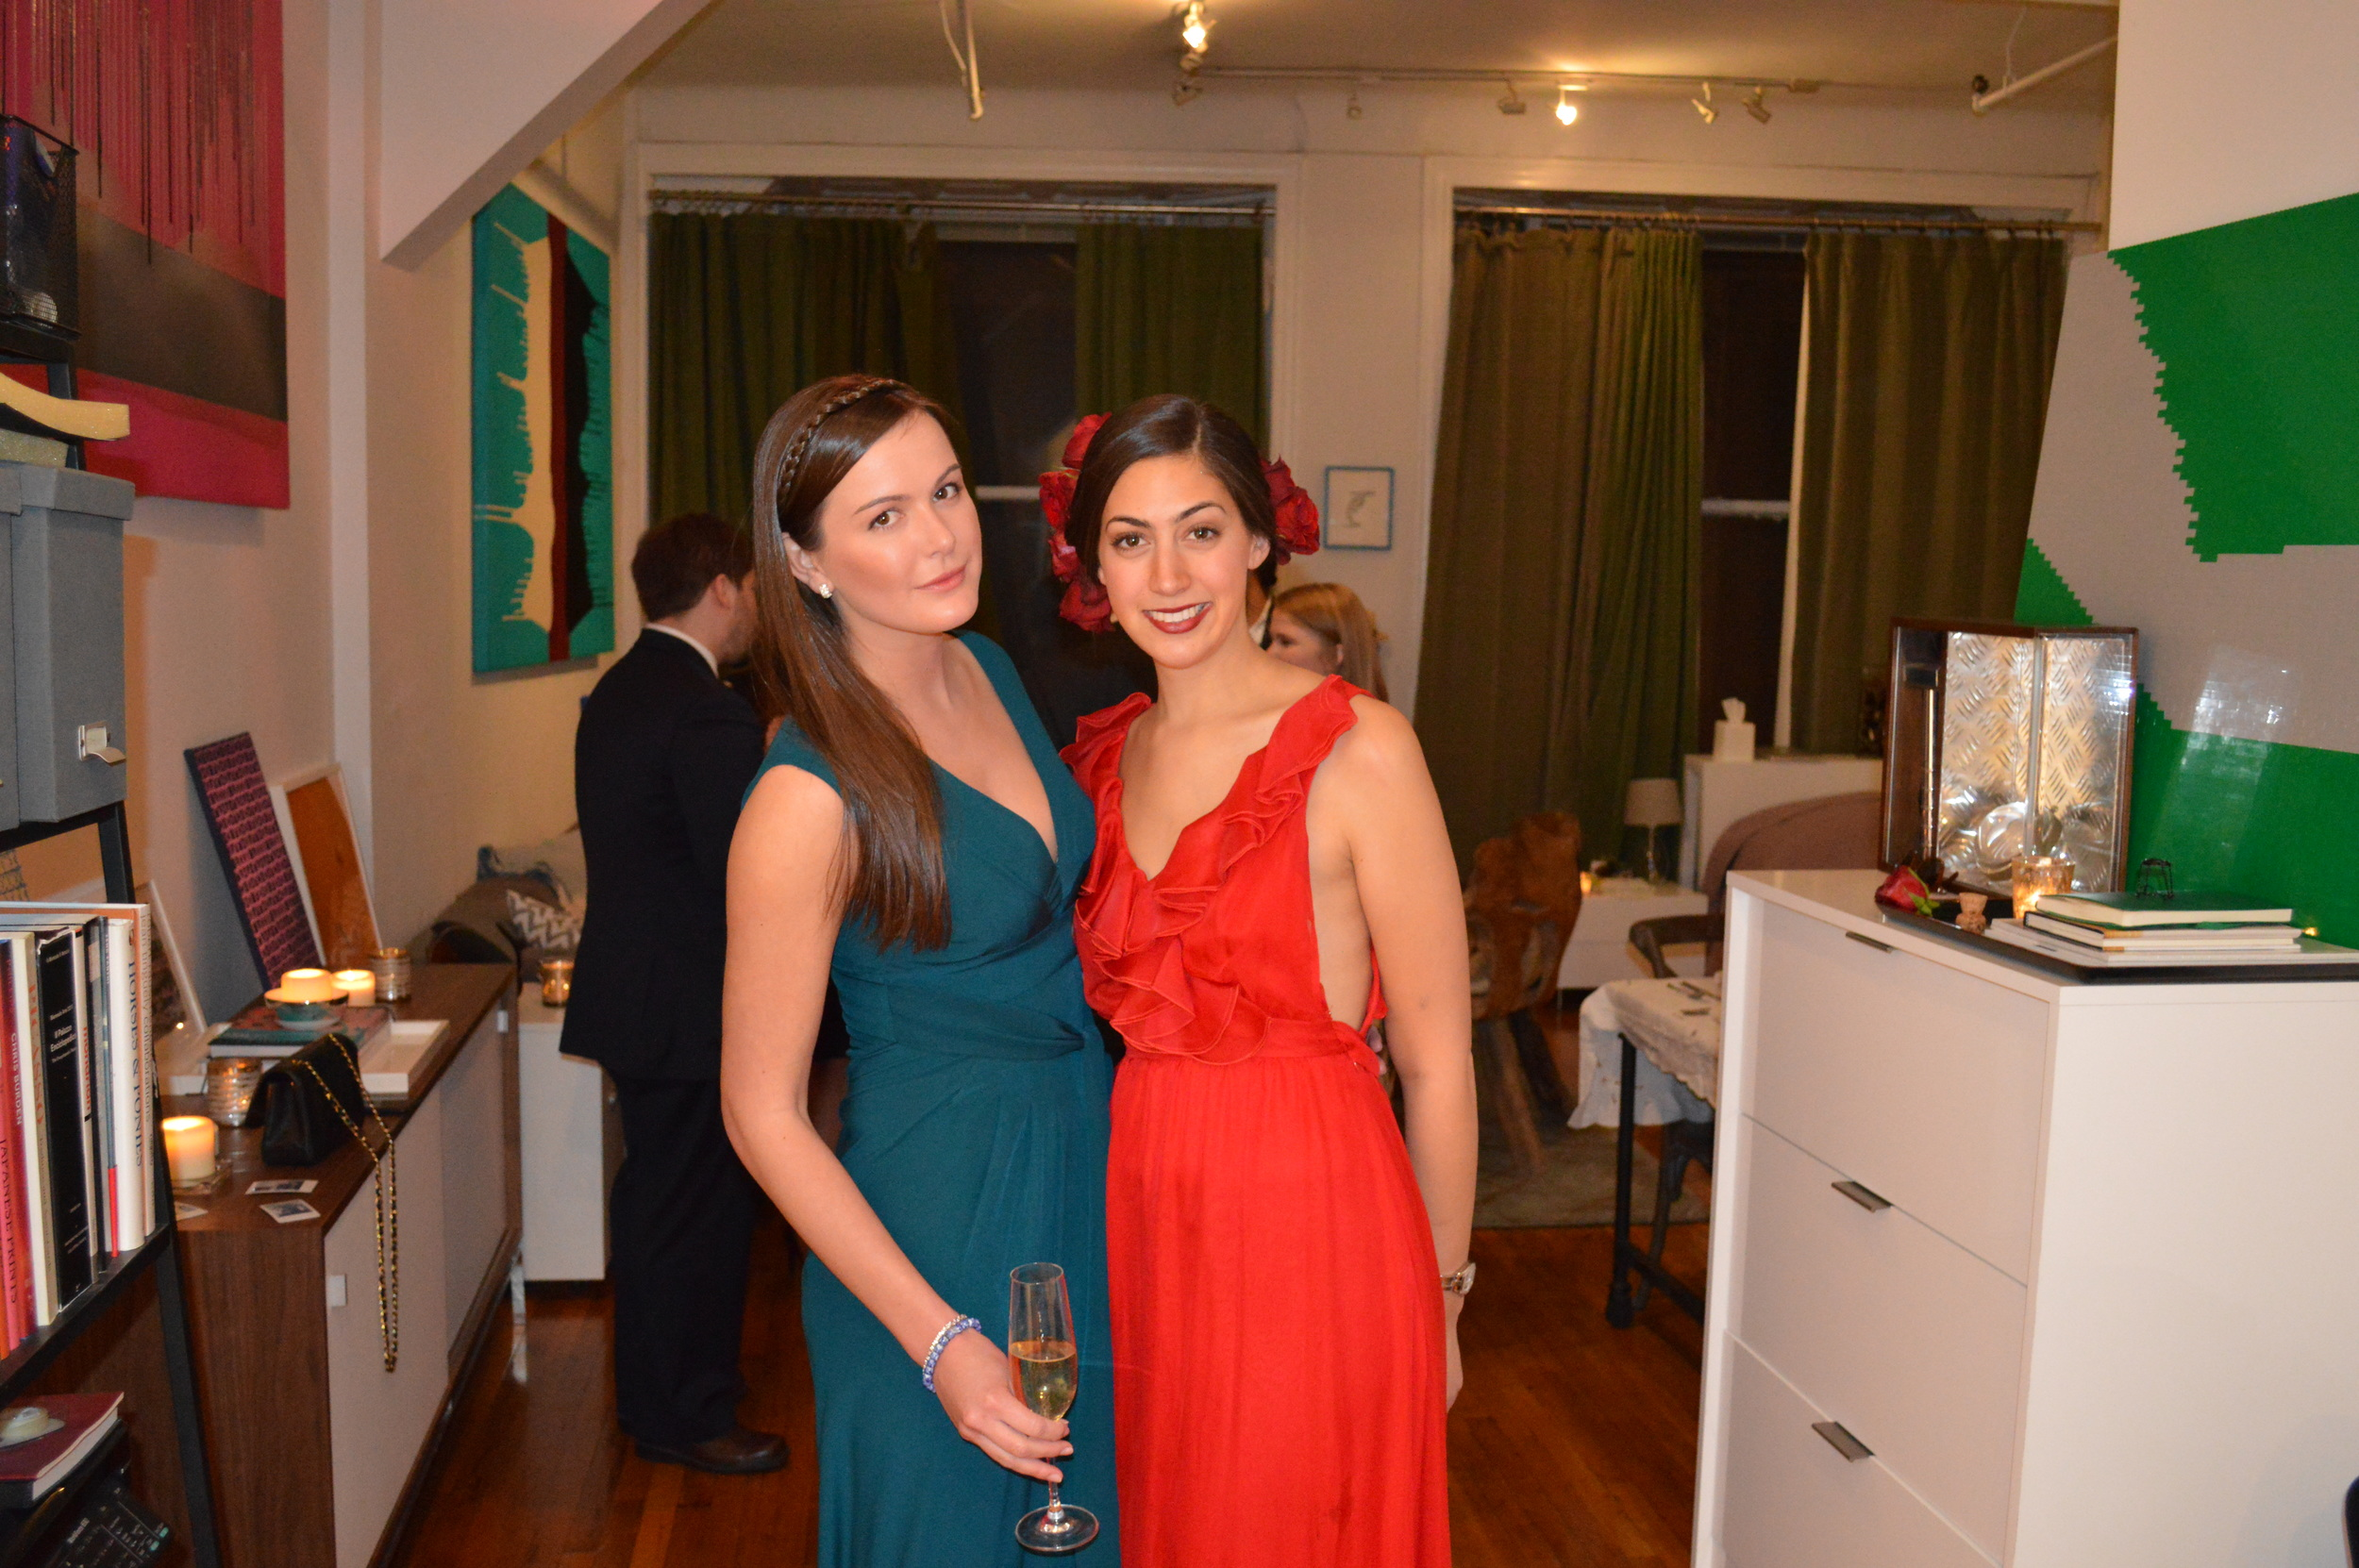 Me, dressed up like a Hallmark Valentine, and dear friend Lucy Demery.